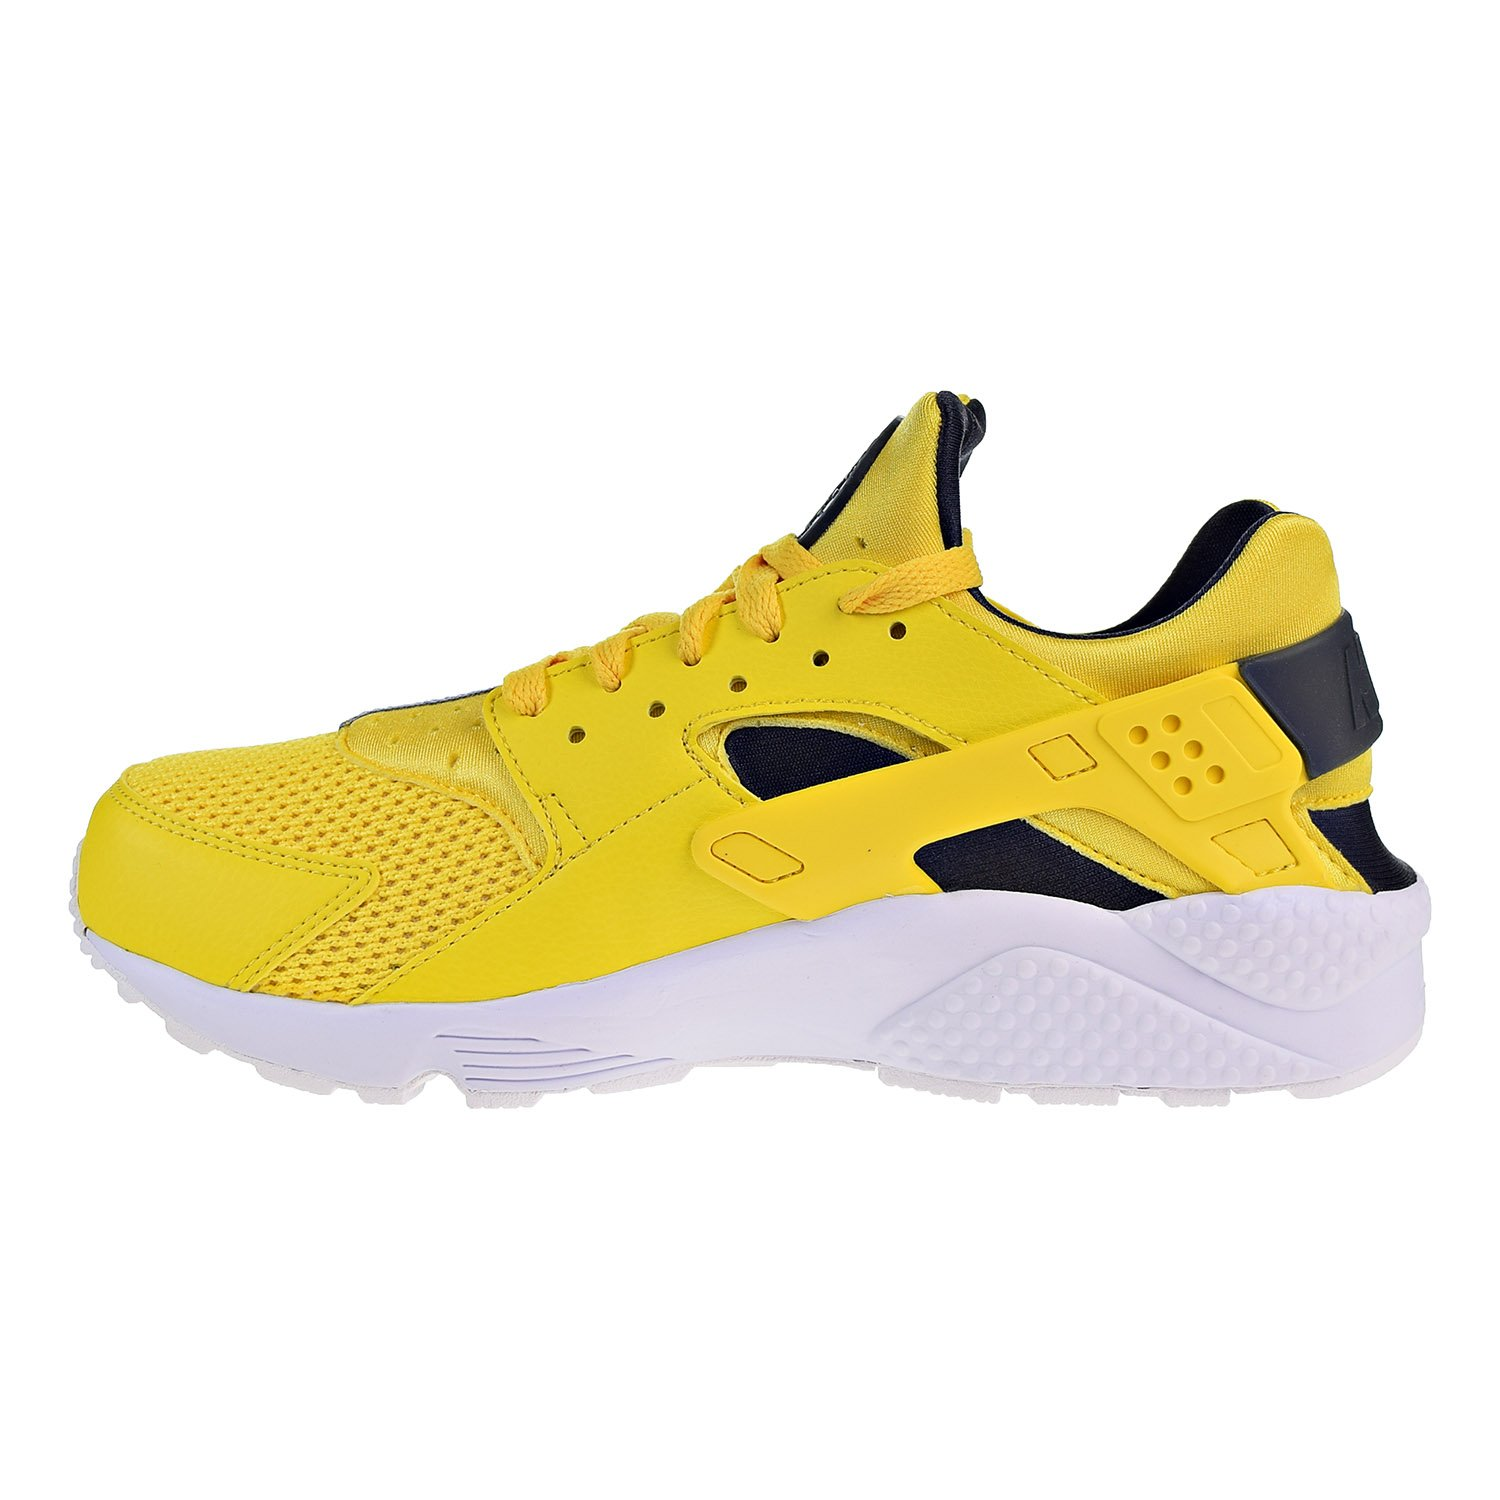 48950470f477b NIKE Air Huarache Men's Running Shoes Tour Yellow/Anthracite-White 318429- 700 (11.5 D(M) US): Amazon.co.uk: Shoes & Bags